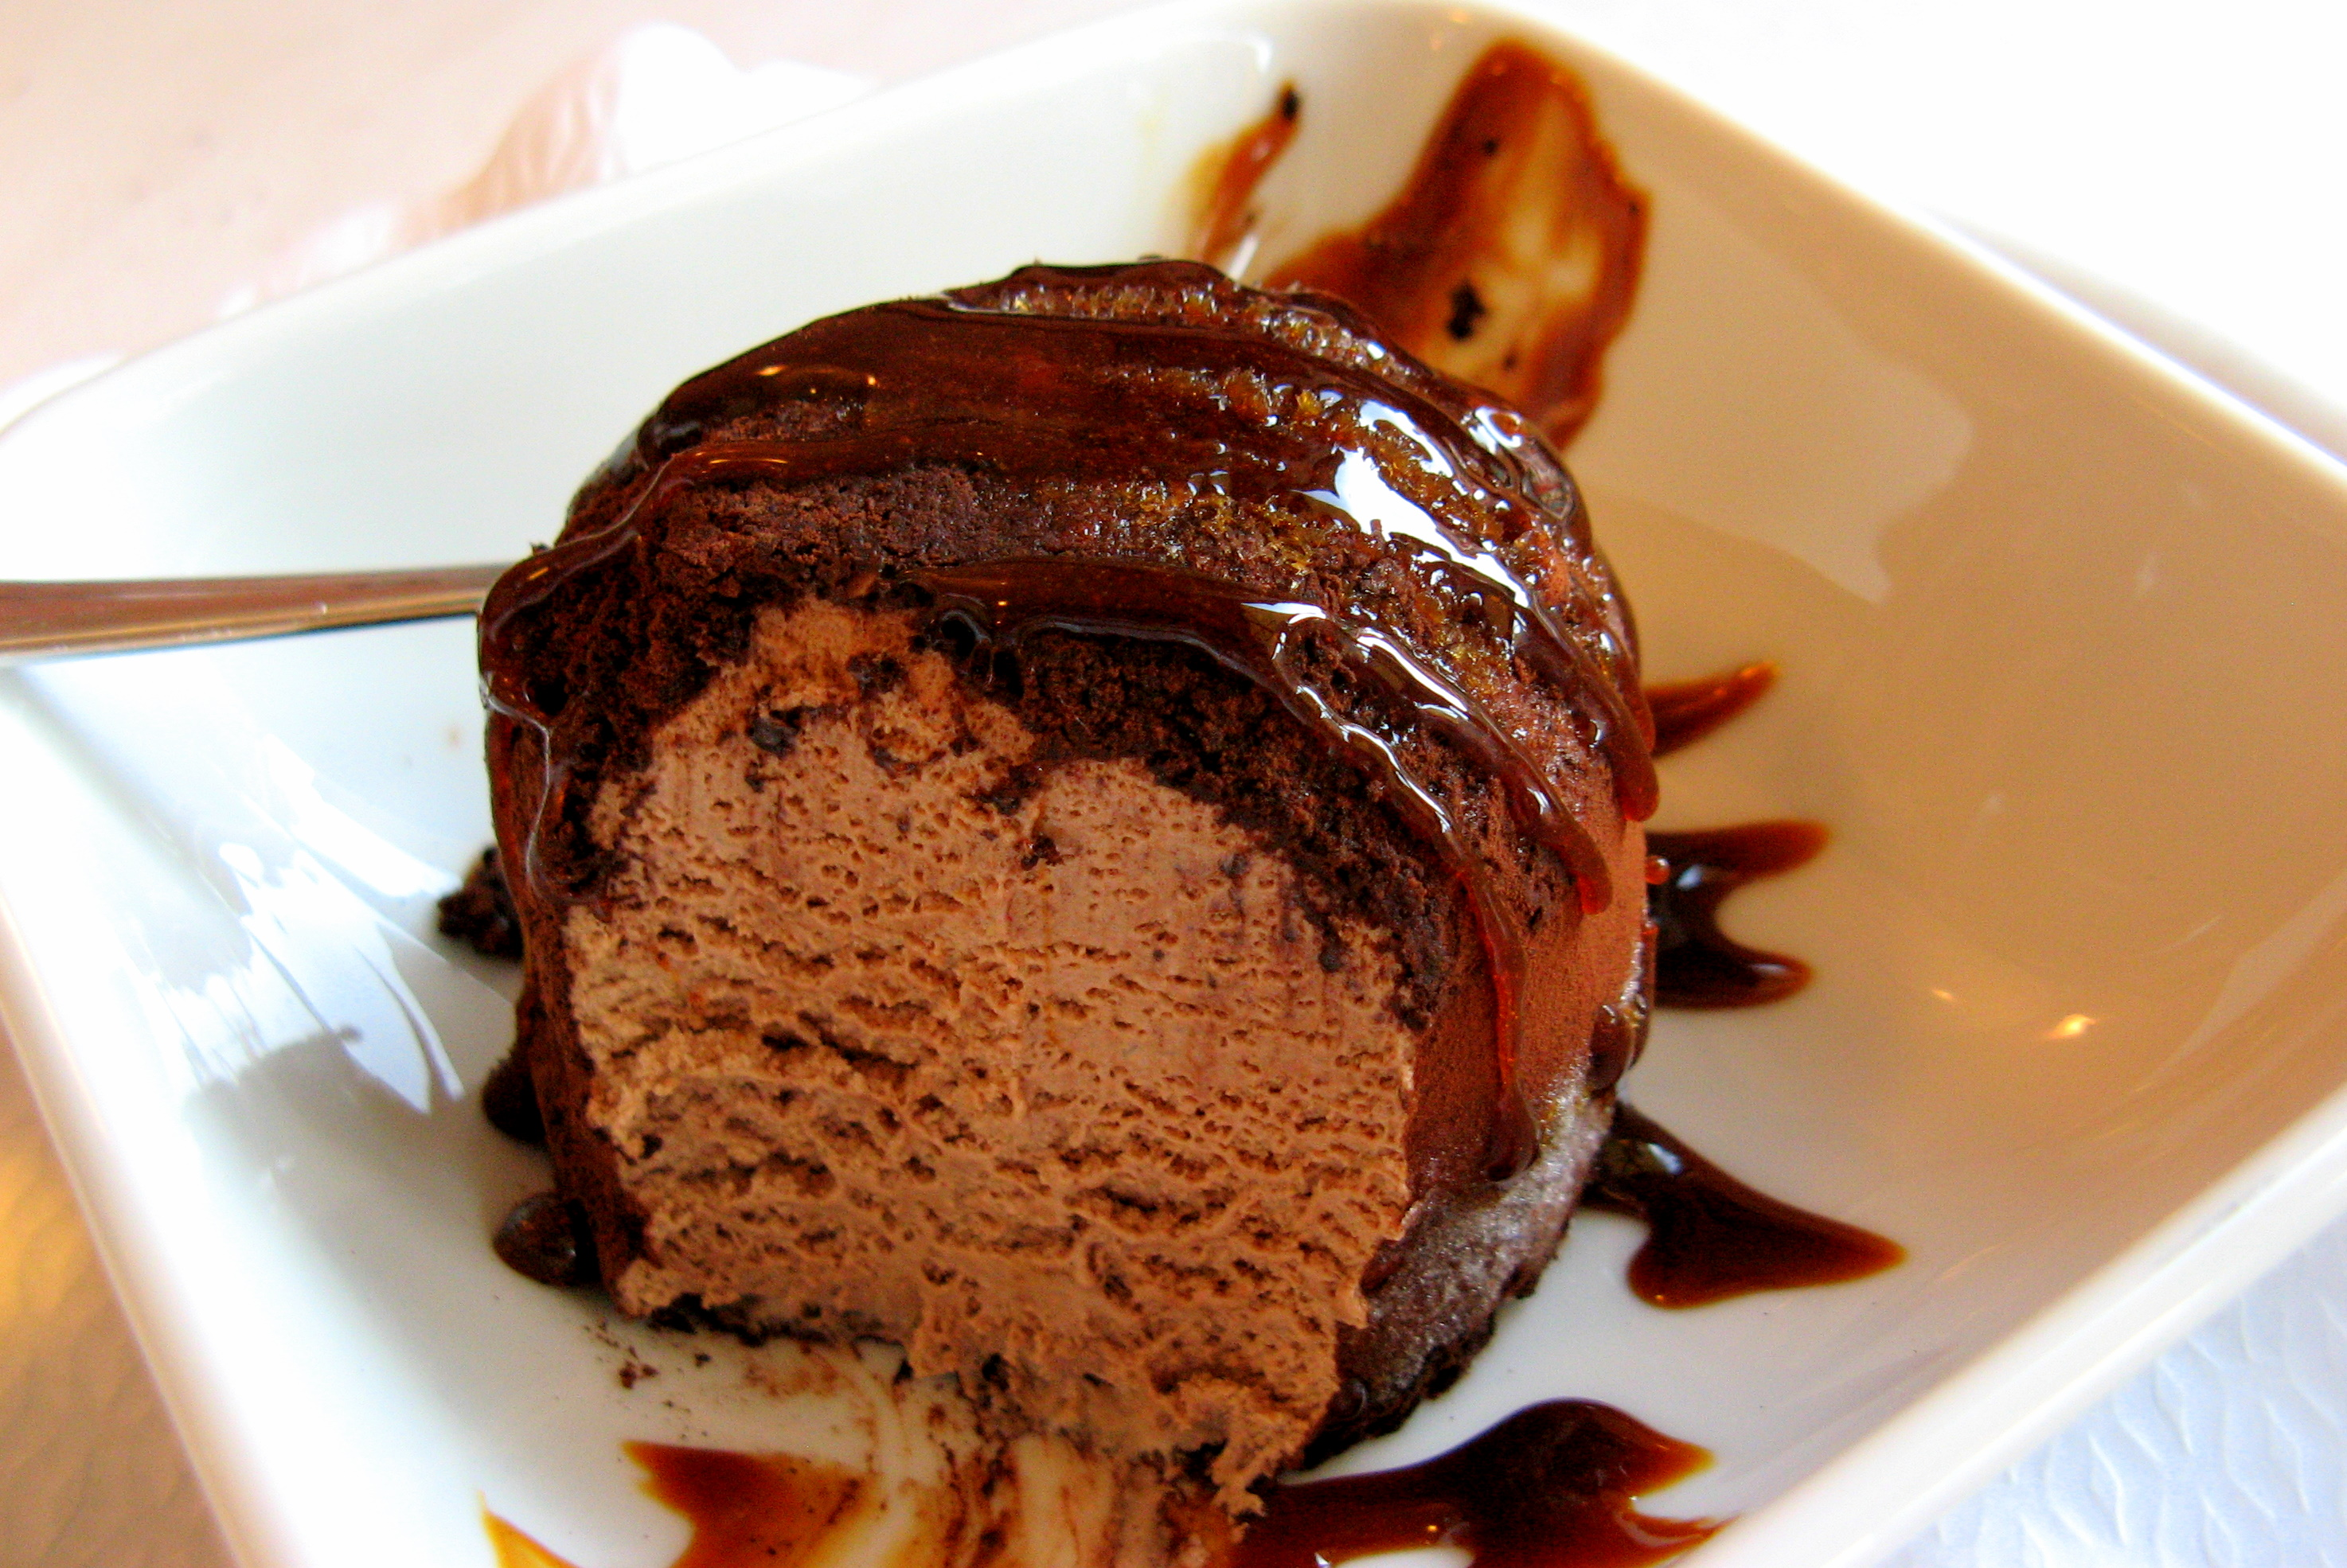 File:Tartufo.jpg - Wikipedia, the free encyclopedia